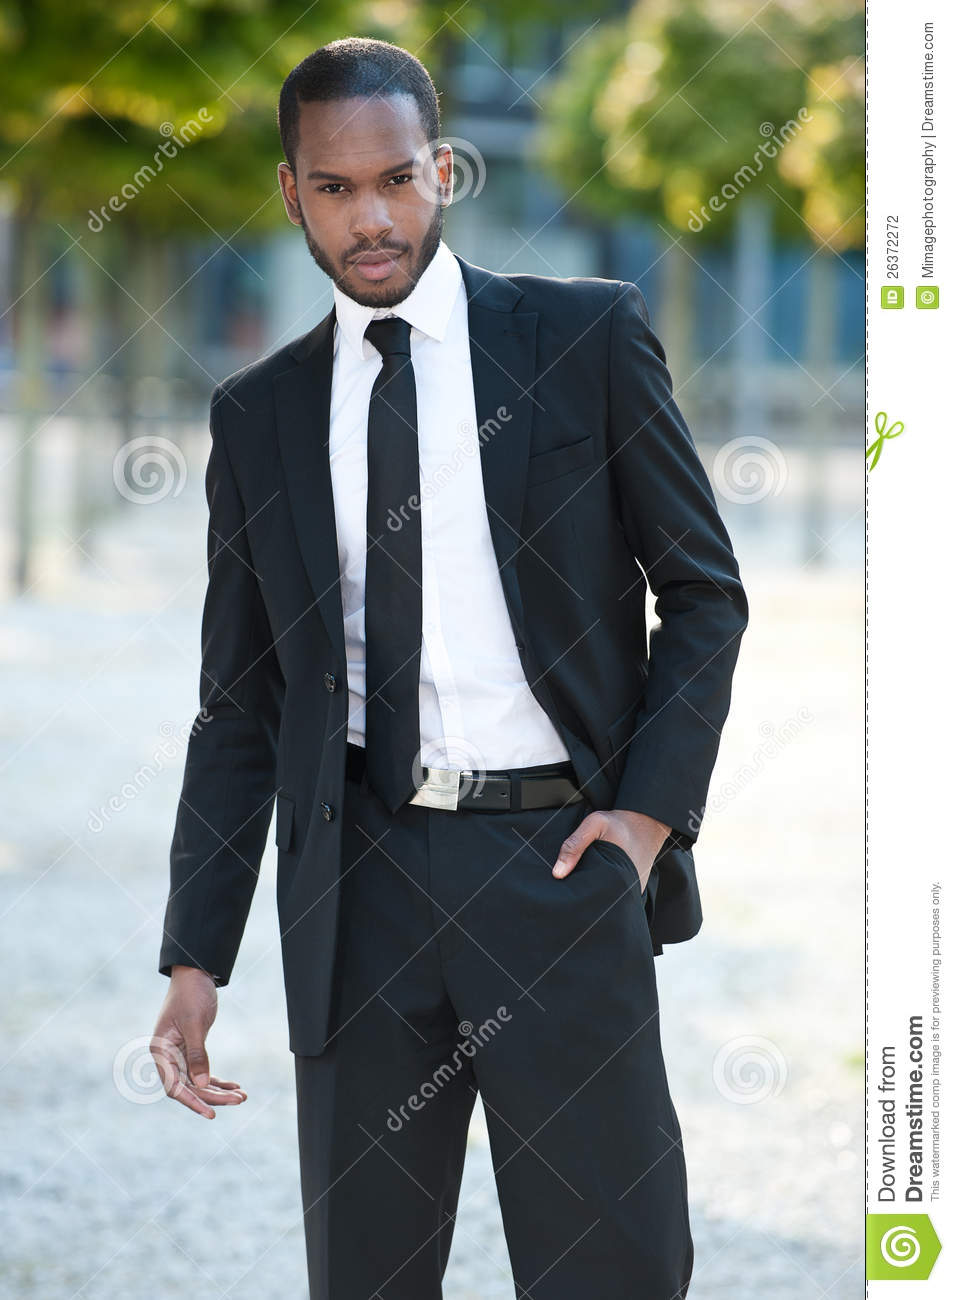 young black man in